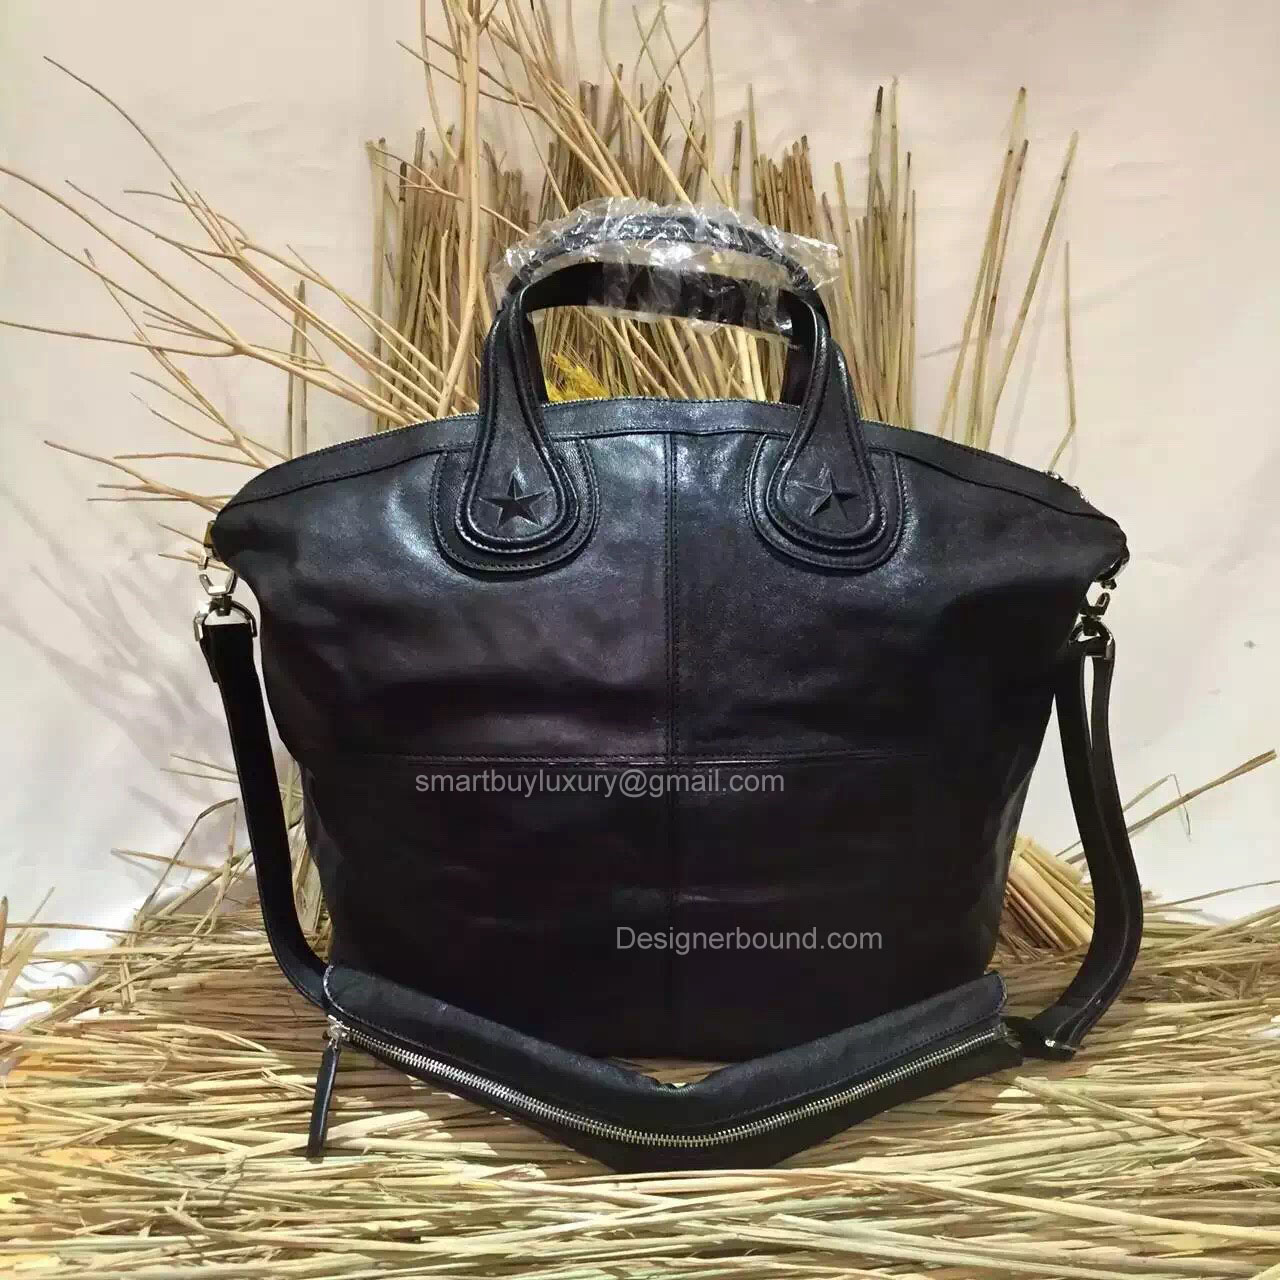 f872d13983 Givenchy Nightingale Medium Bag in Black Lambskin 285160